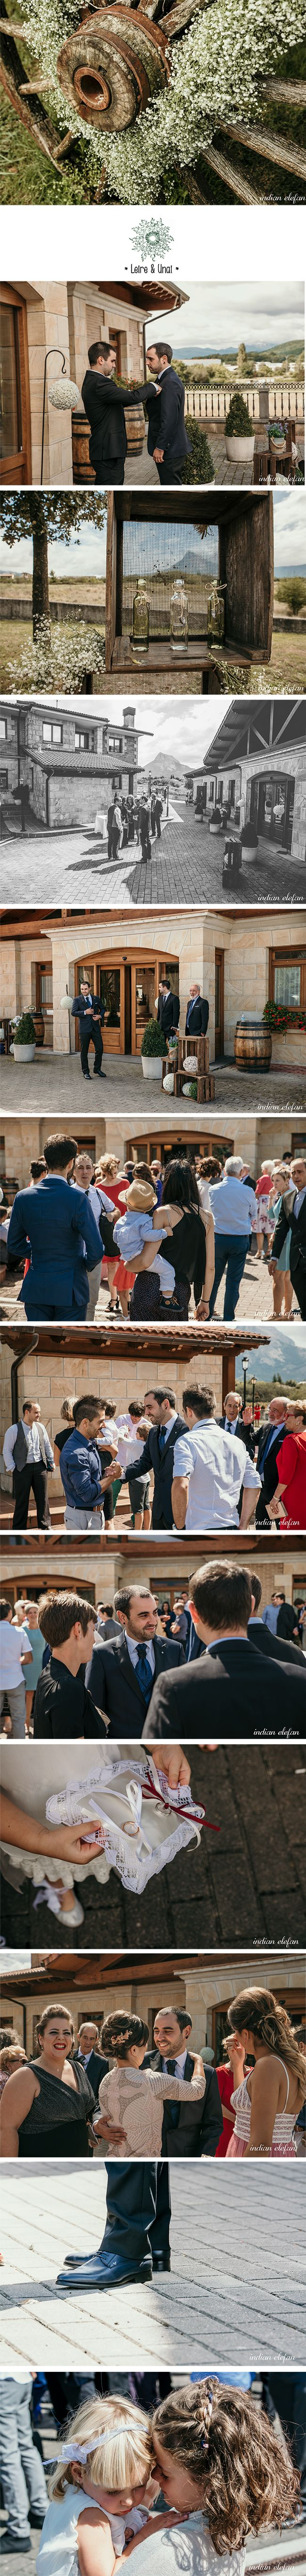 boda civil pamplona